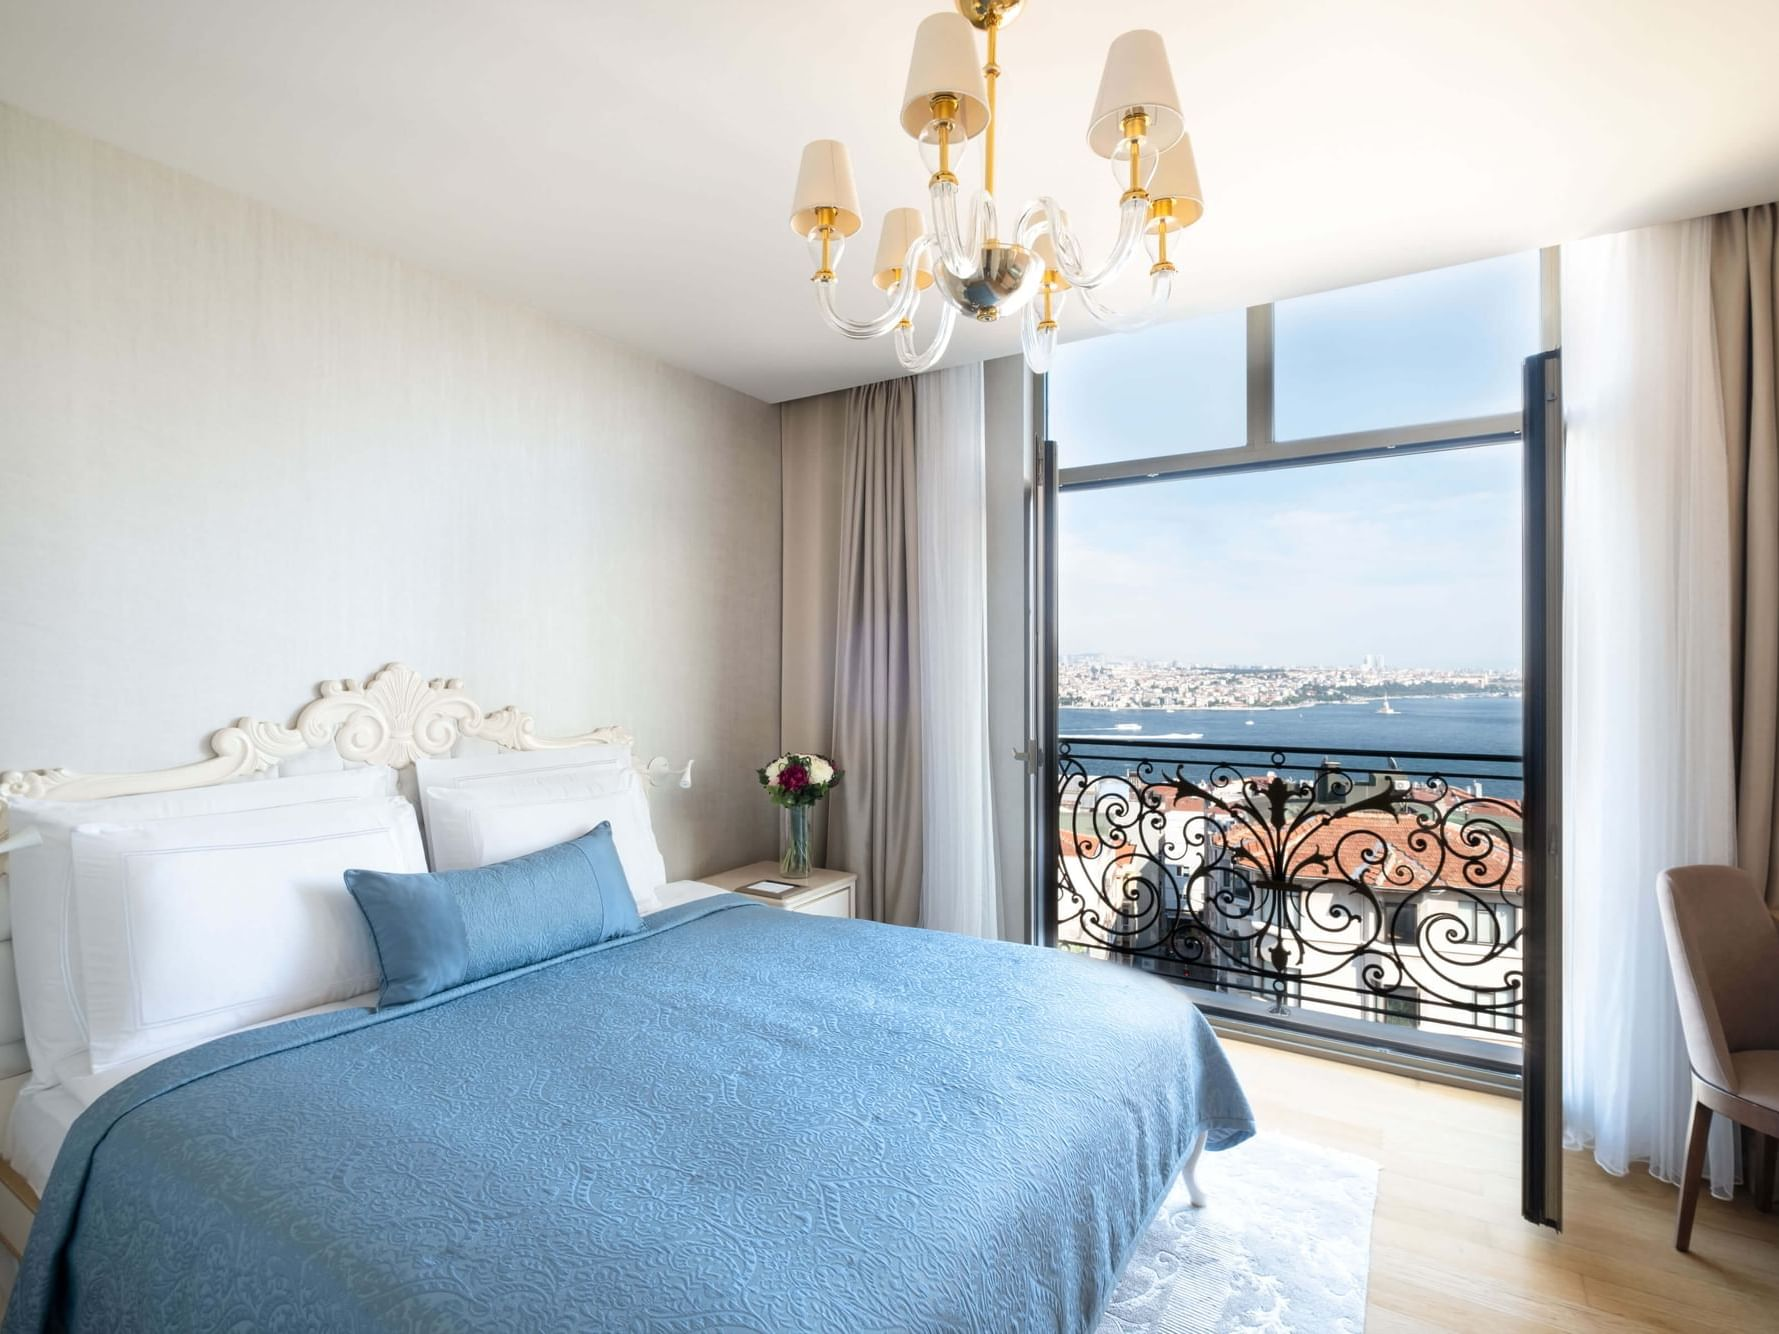 Executive Suite with one bed at CVK Park Bosphorus Hotel